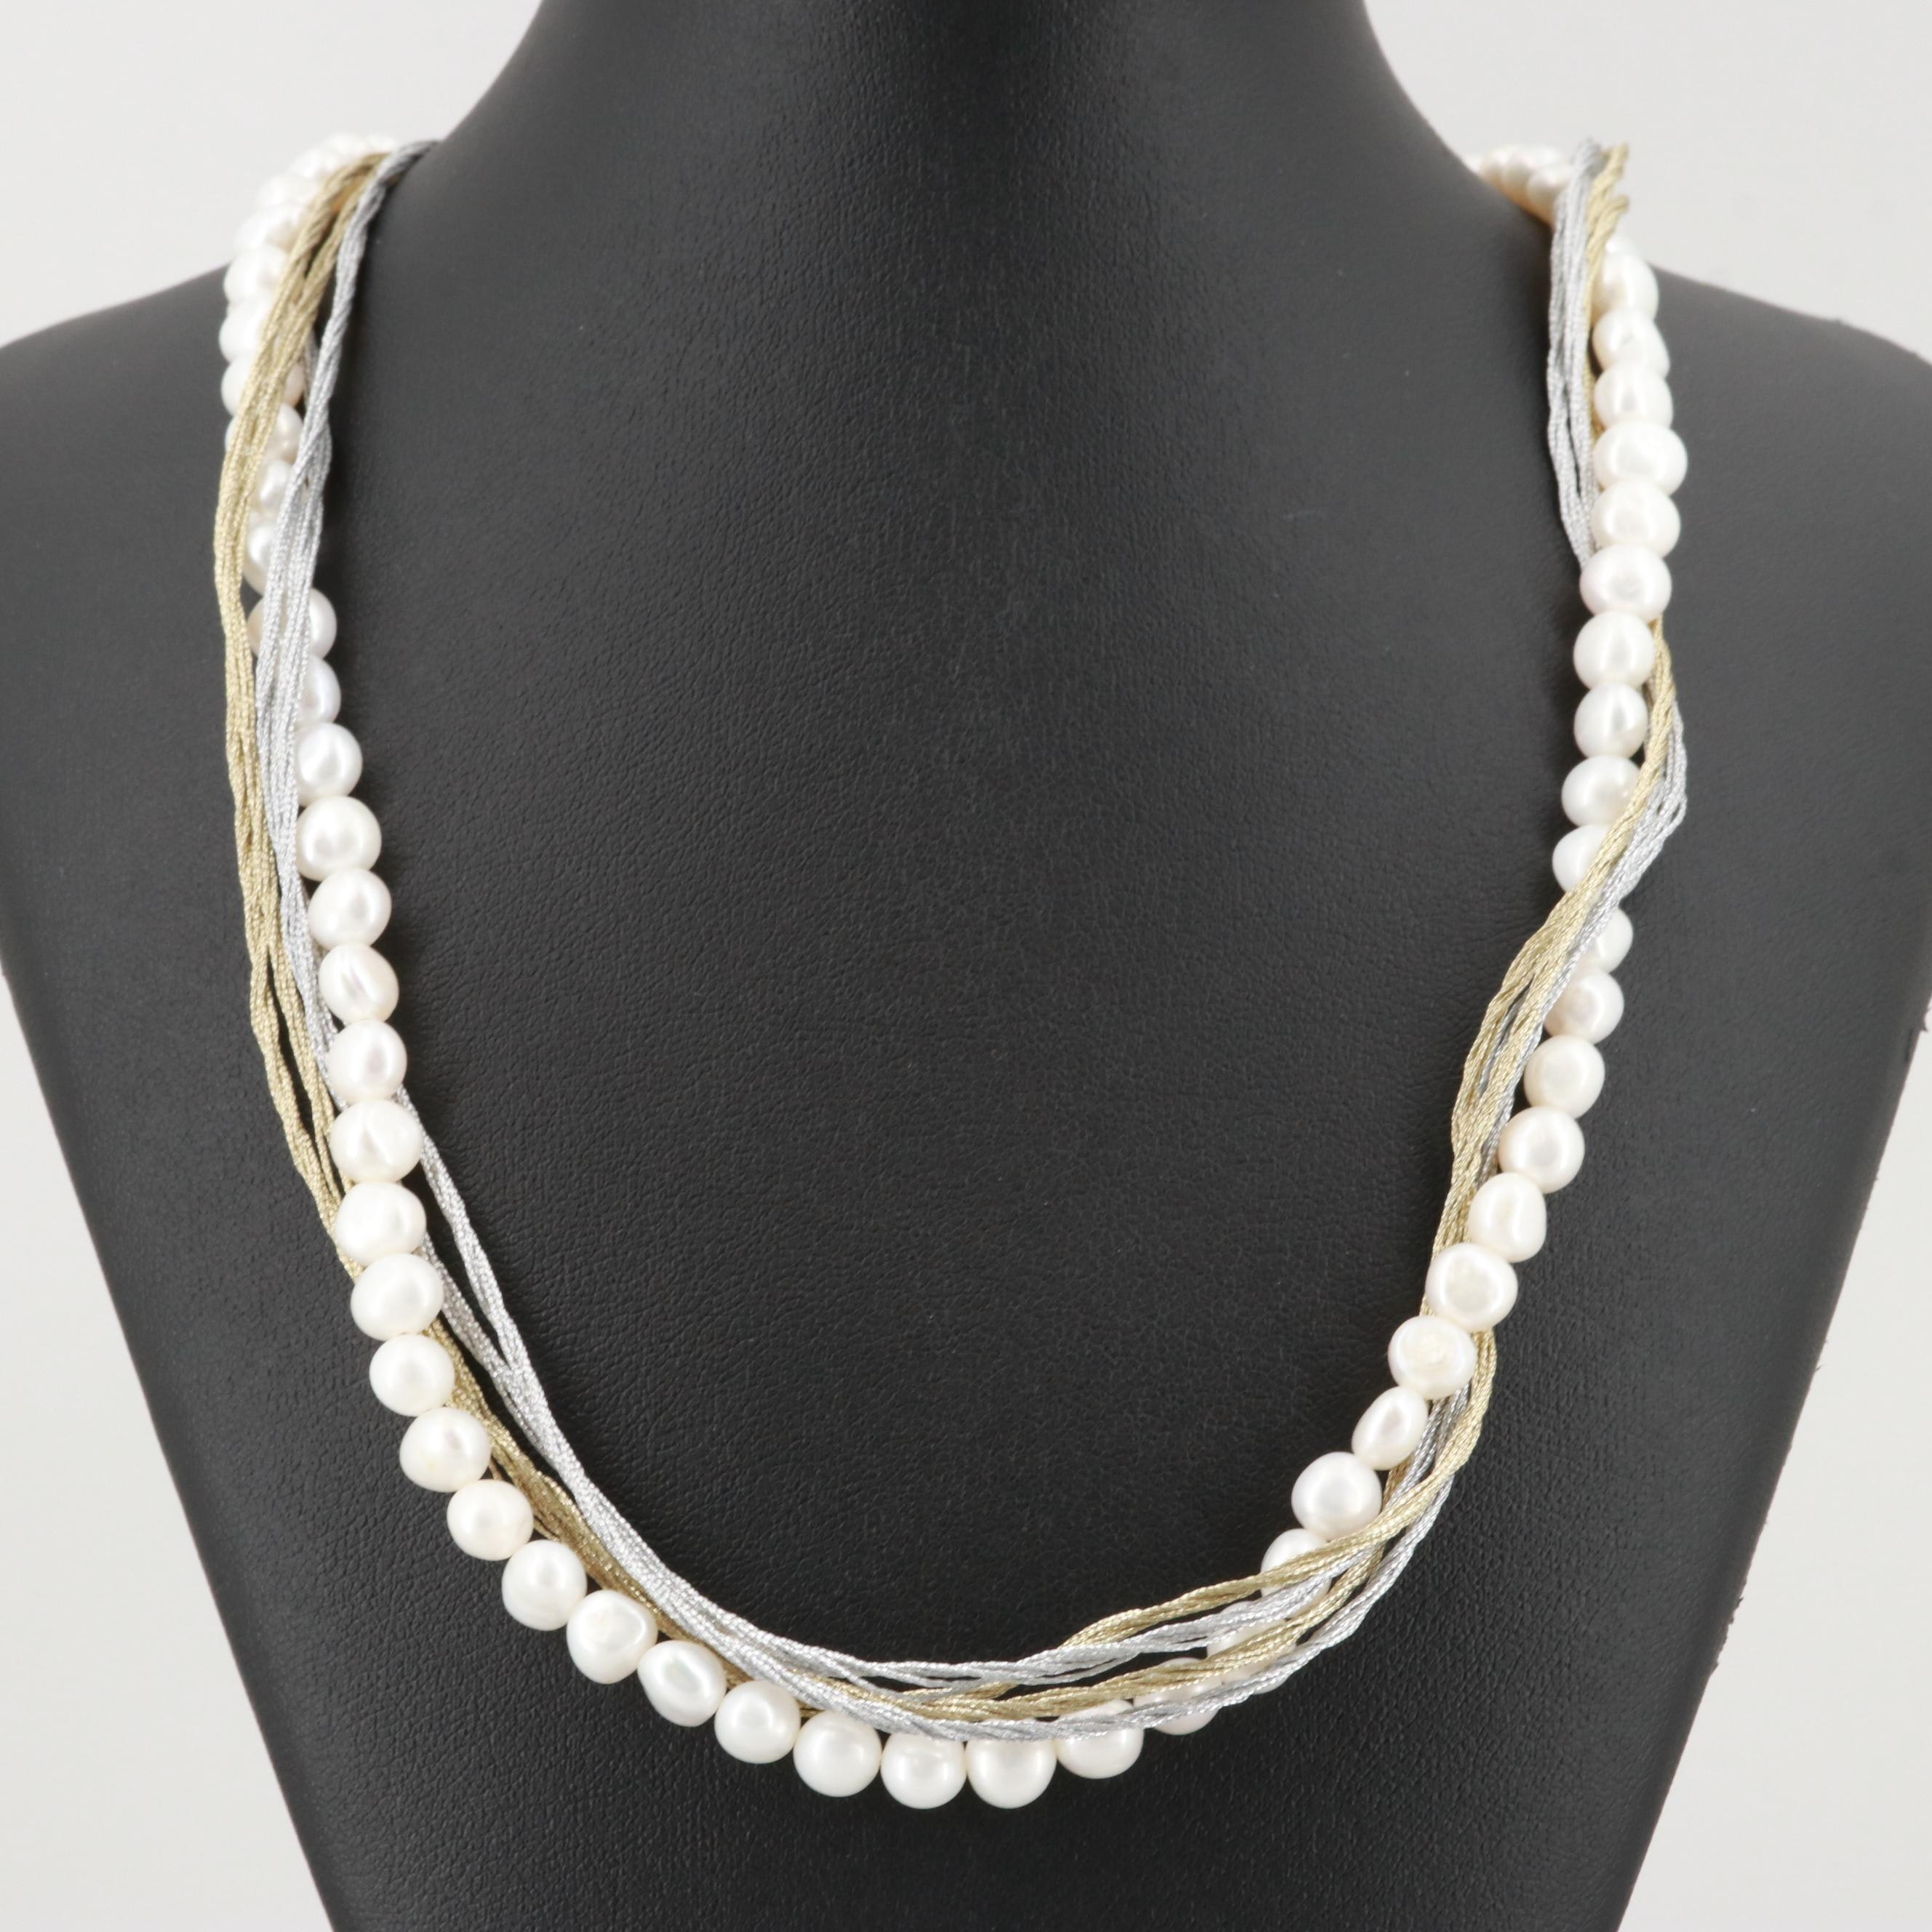 Cultured Pearl Necklace with Sterling Silver Accents